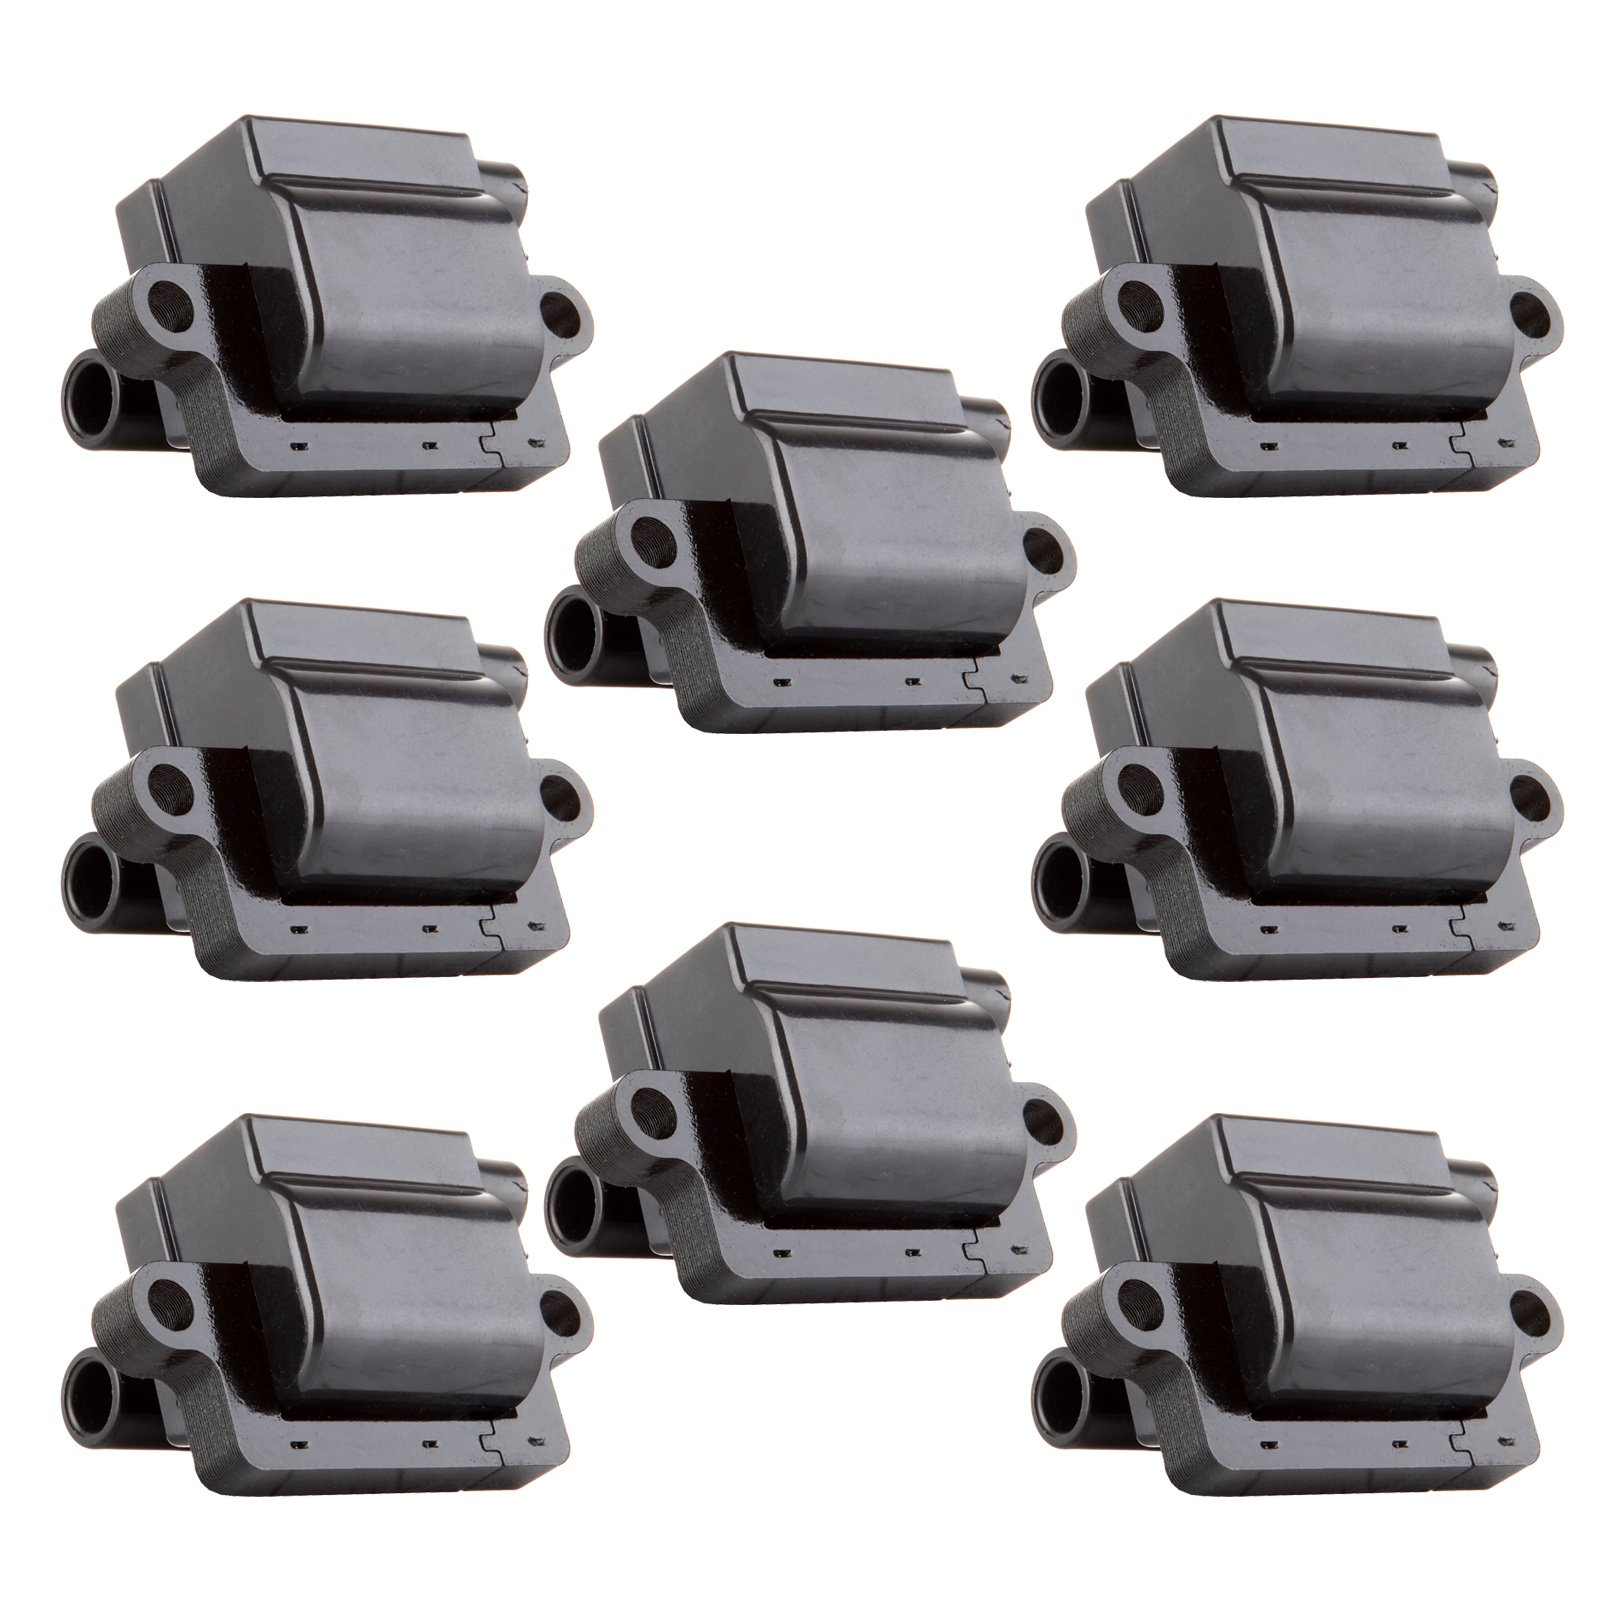 Ignition Coils Square High Performance Ignition Parts for Cadillac Chevy GMC Hummer Isuzu Workhorse Compatible with UF271 C1208 (Pack of 8) by ECCPP